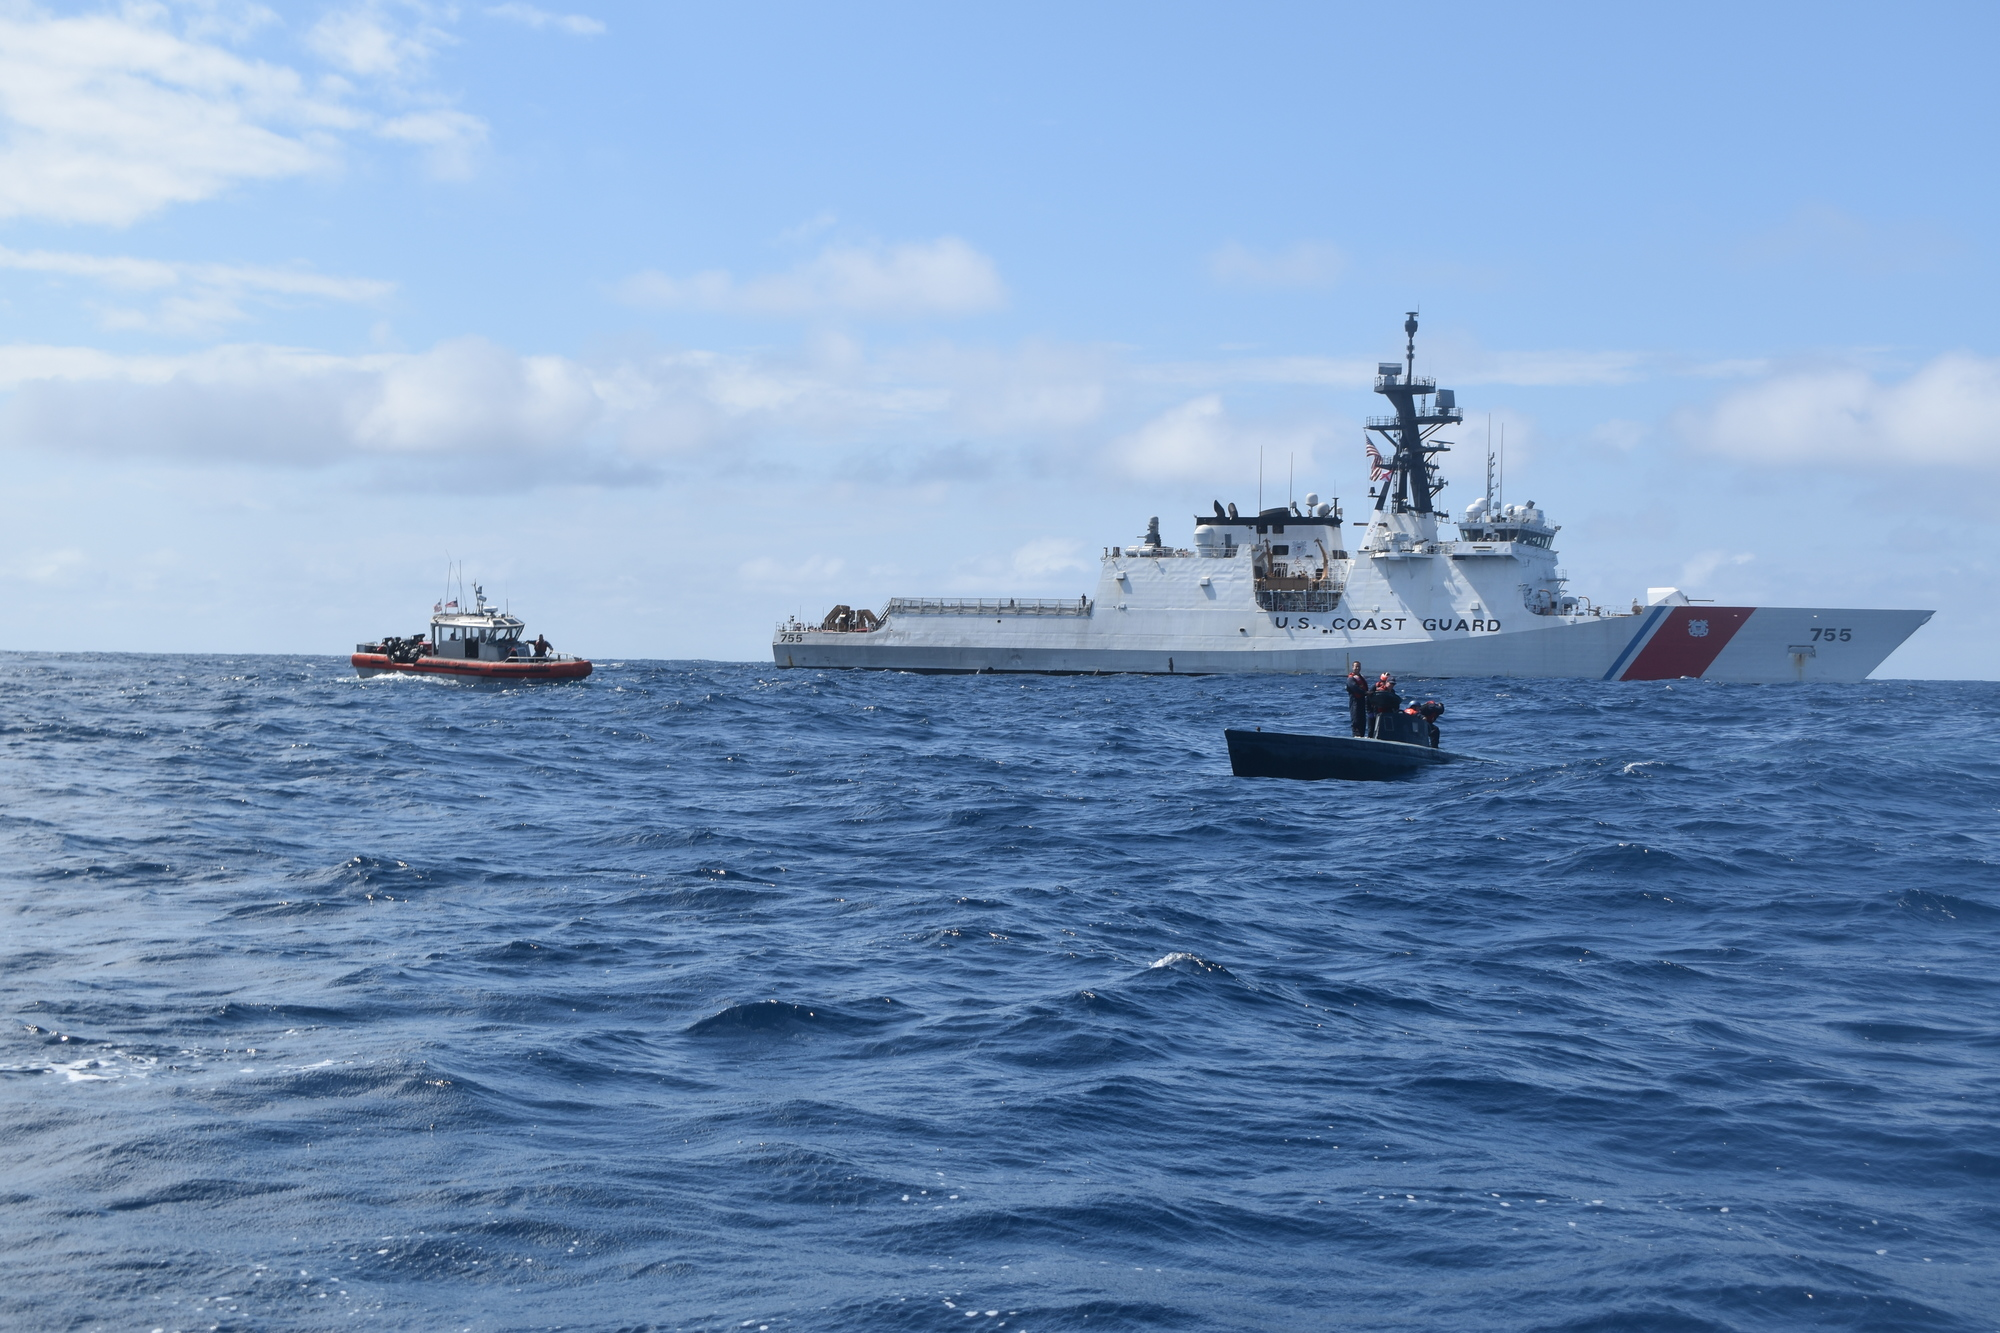 Coast Guard Cutter Munro boarding team interdicts suspected drug smuggling vessel